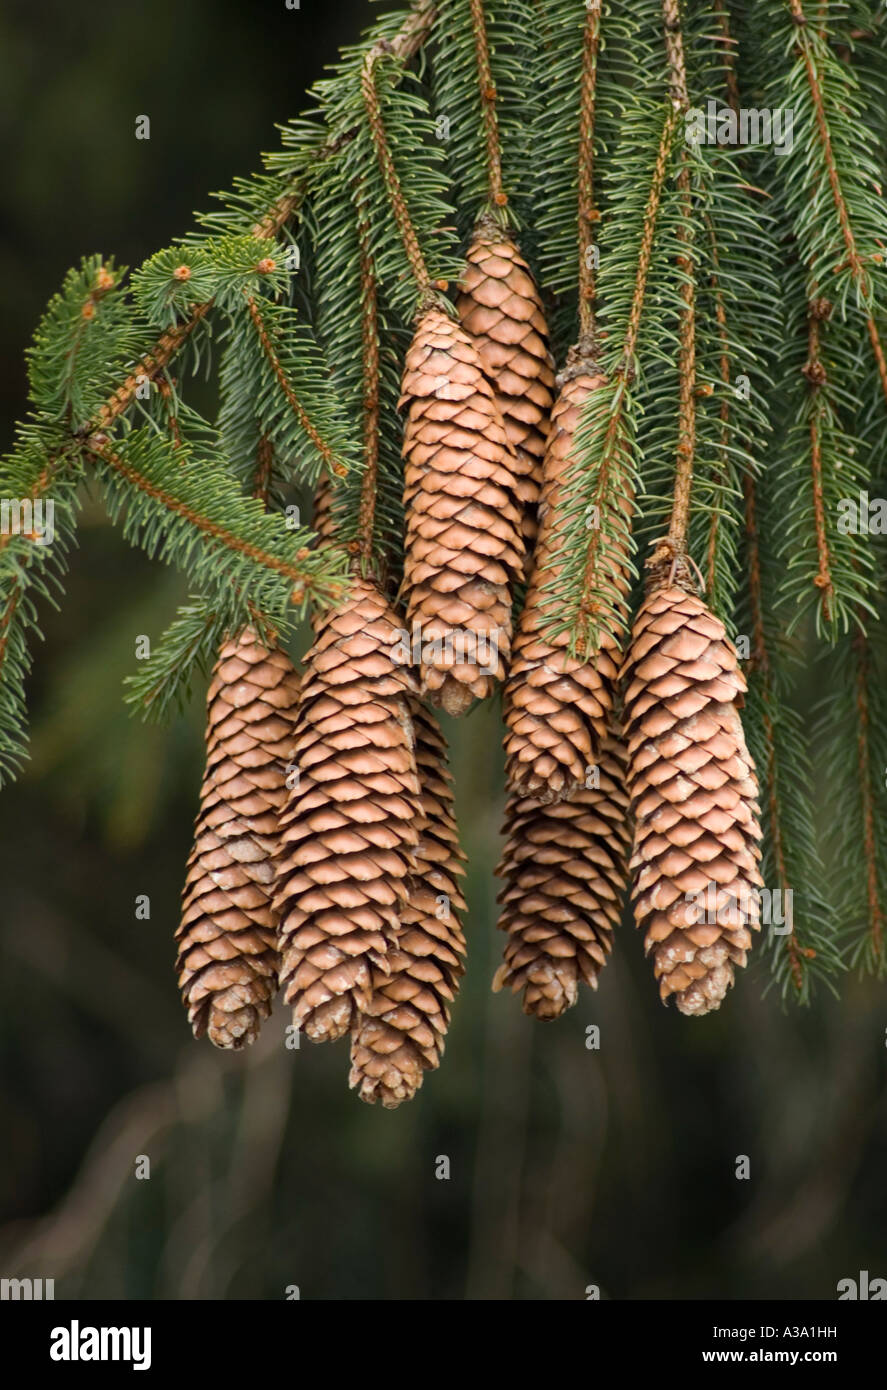 Norway Spruce Pine Cones Stock Photo